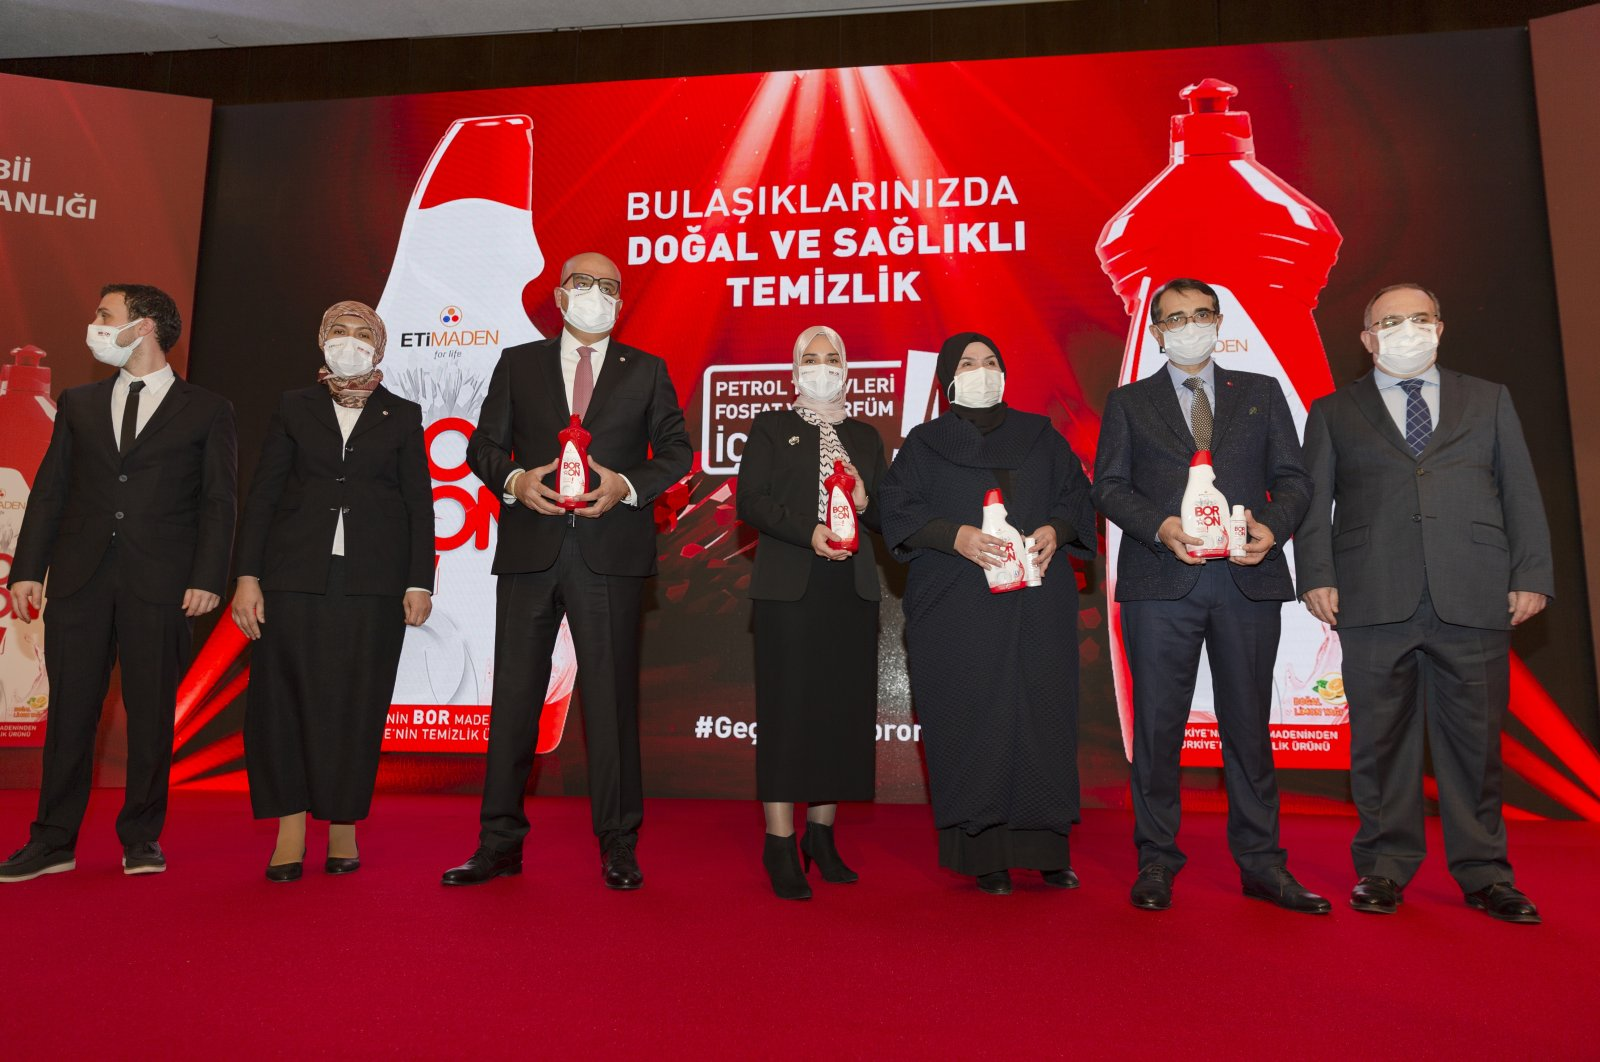 Energy and Natural Resources Minister Fatih Dönmez (2nd from R) attends the launching ceremony of a new Turkish-made dishwasher liquid detergent product, Ankara, Turkey, Dec. 16, 2020. (AA Photo)